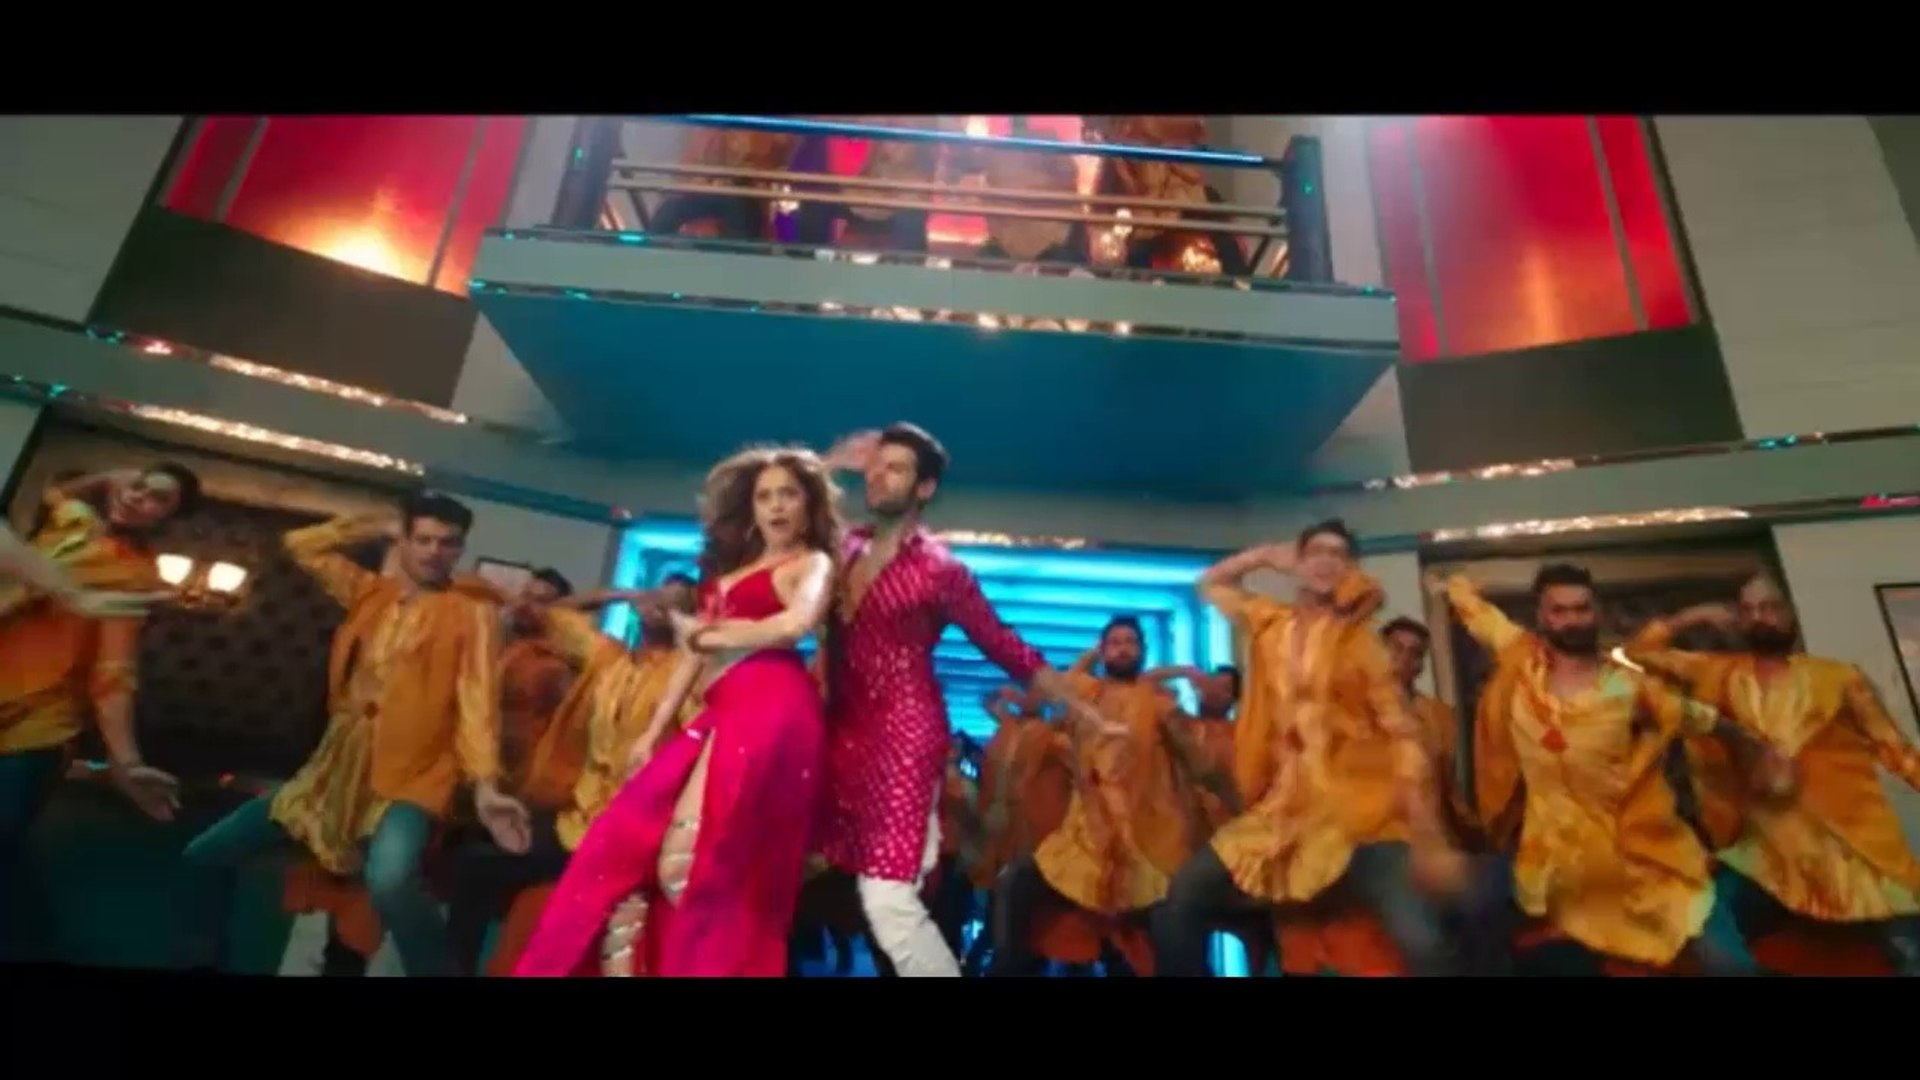 Yo Yo Honey Singh recreates iconic punjabi song Totey Totey in 'Chhote Chhote Peg